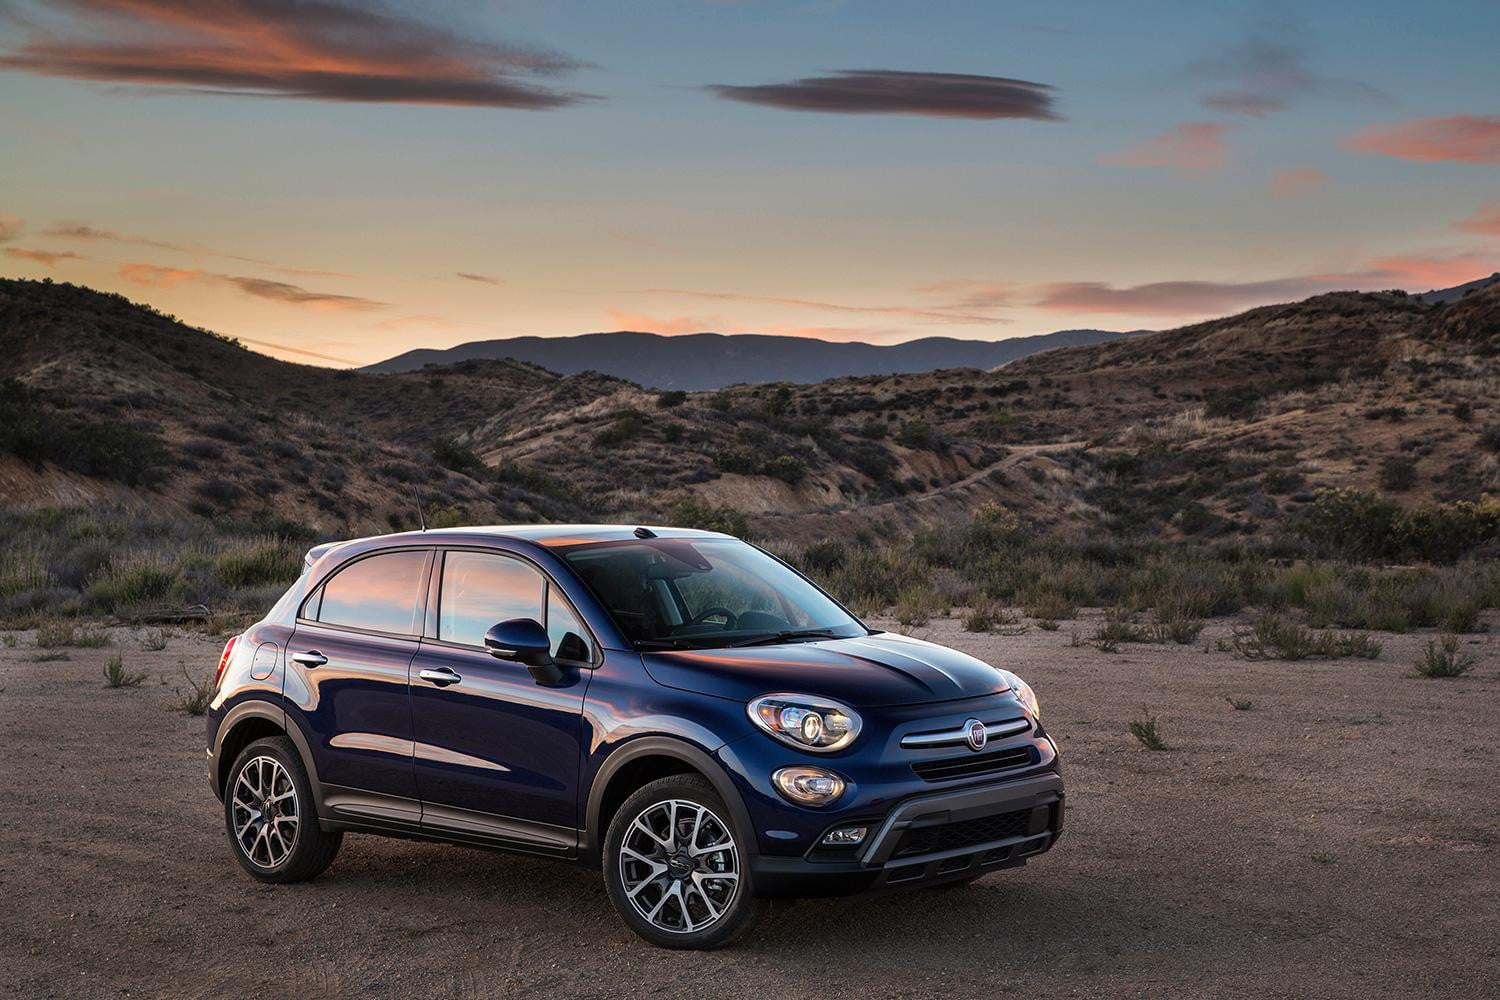 2016 fiat 500x first drive review digital trends. Black Bedroom Furniture Sets. Home Design Ideas